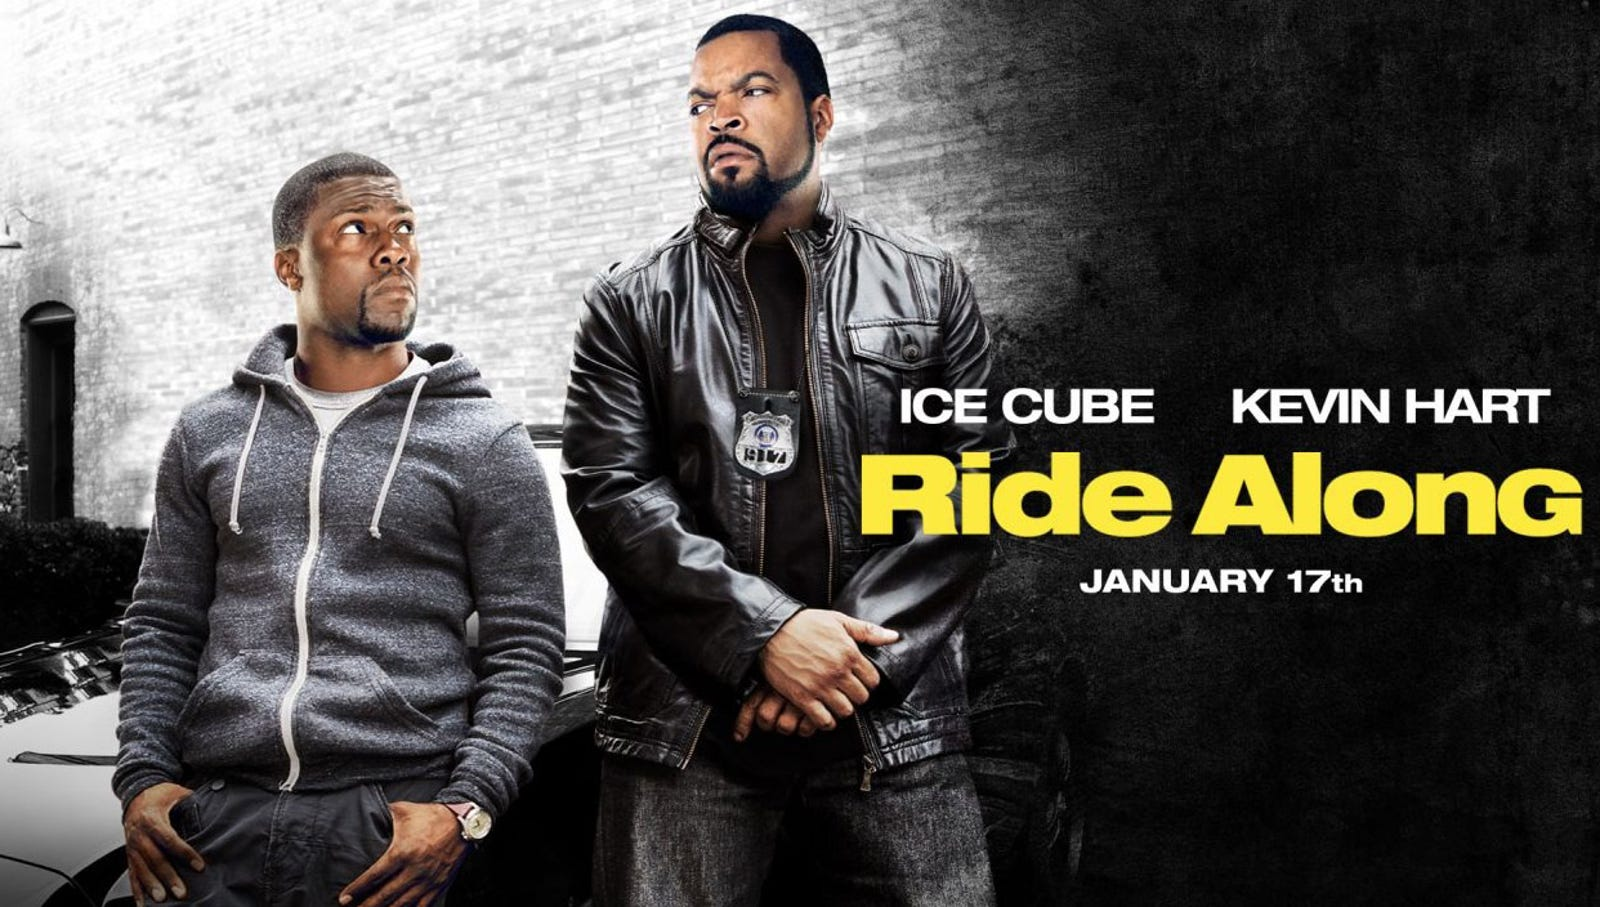 Yo, what up, it's your boy Ice Cube, and today, after extensive delays on the part of Universal Pictures' marketing department and a number of other setbacks, I'm about to take you on a ride along. So buckle up. It's gonna be a wild ride.